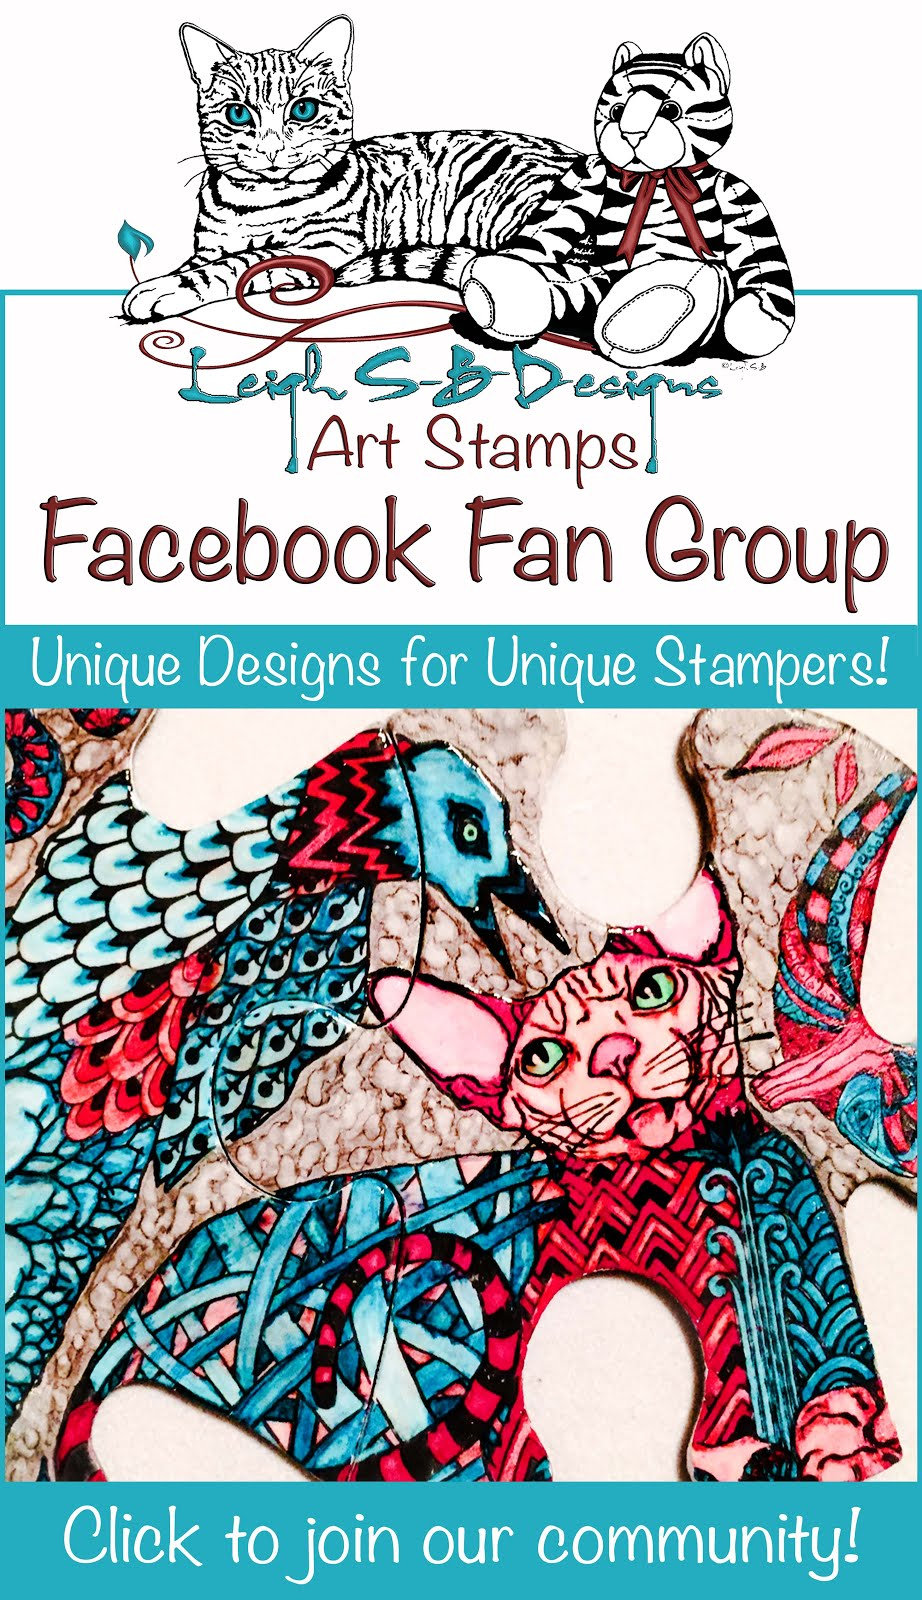 FACEBOOK FAN GROUP